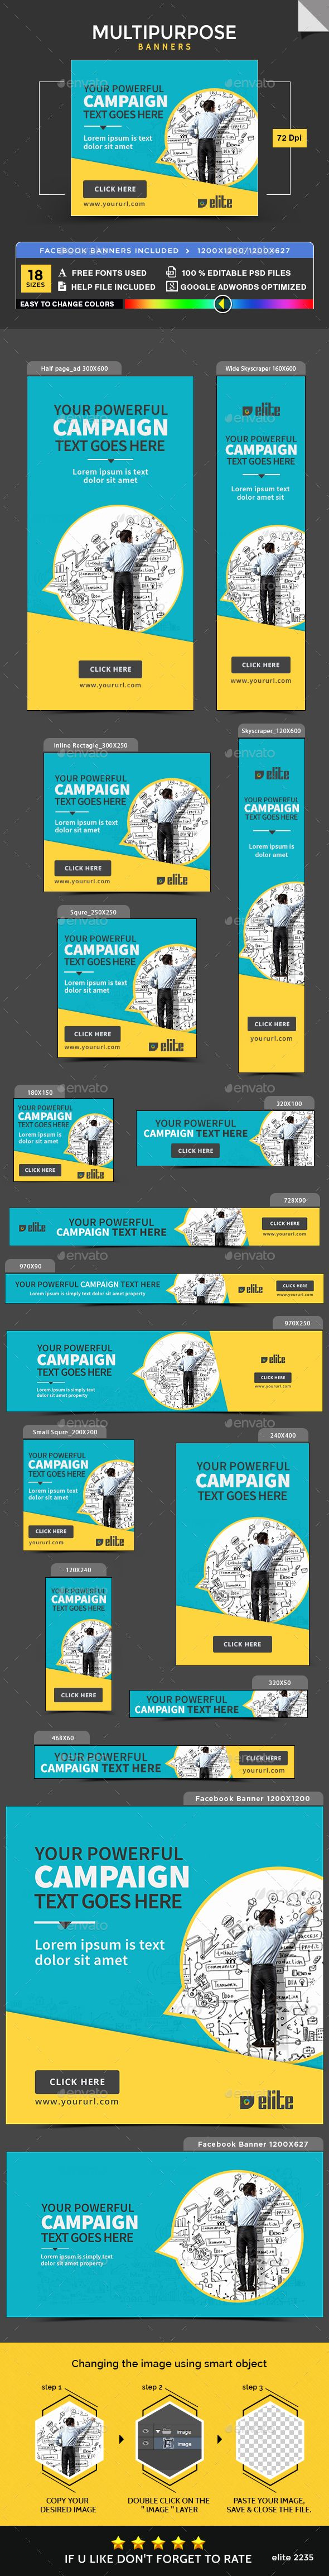 Multipurpose Banners - Banners & Ads Web Elements Download here : https://graphicriver.net/item/multipurpose-banners/19873339?s_rank=85&ref=Al-fatih